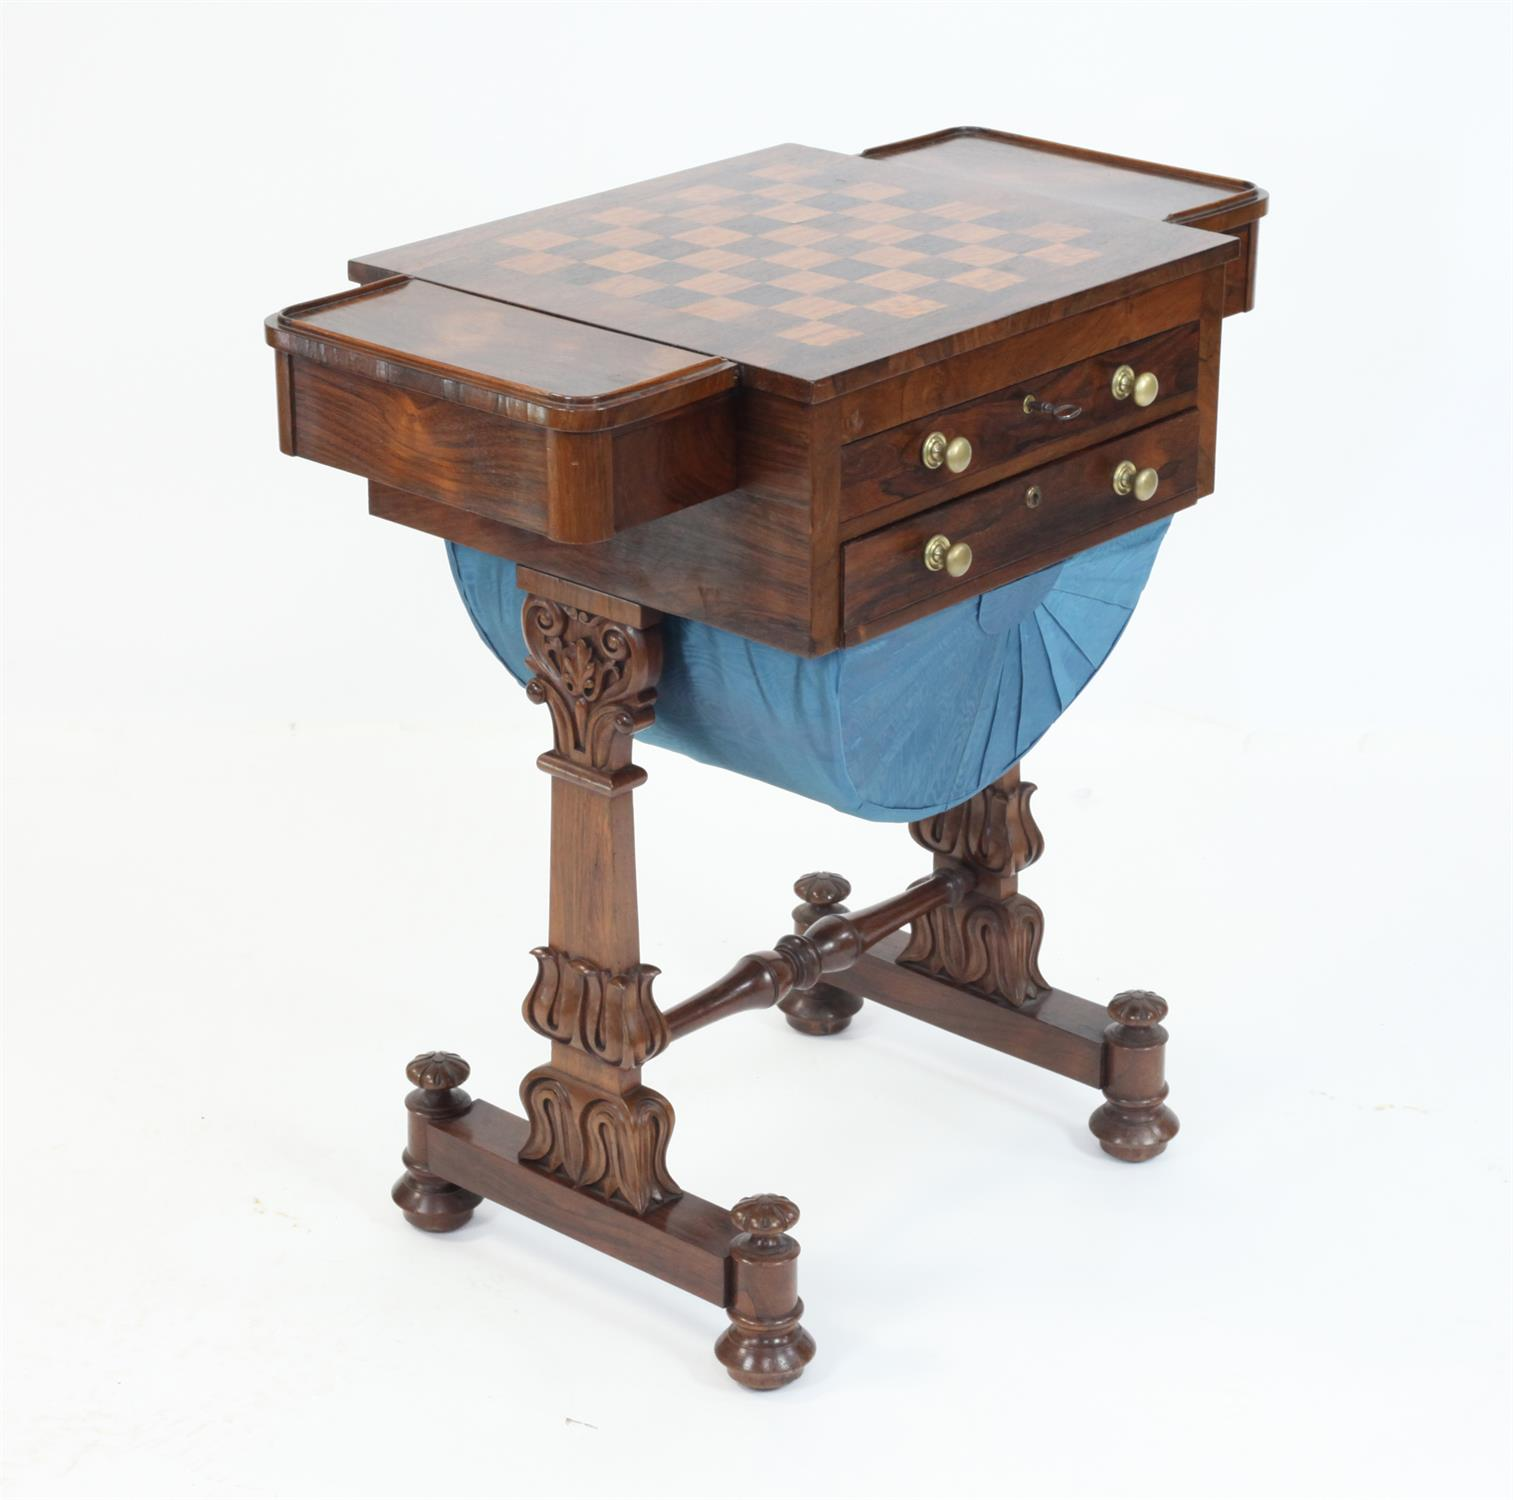 Early 19th Century rosewood games and work table with chessboard top flanked by drawers over - Image 2 of 5